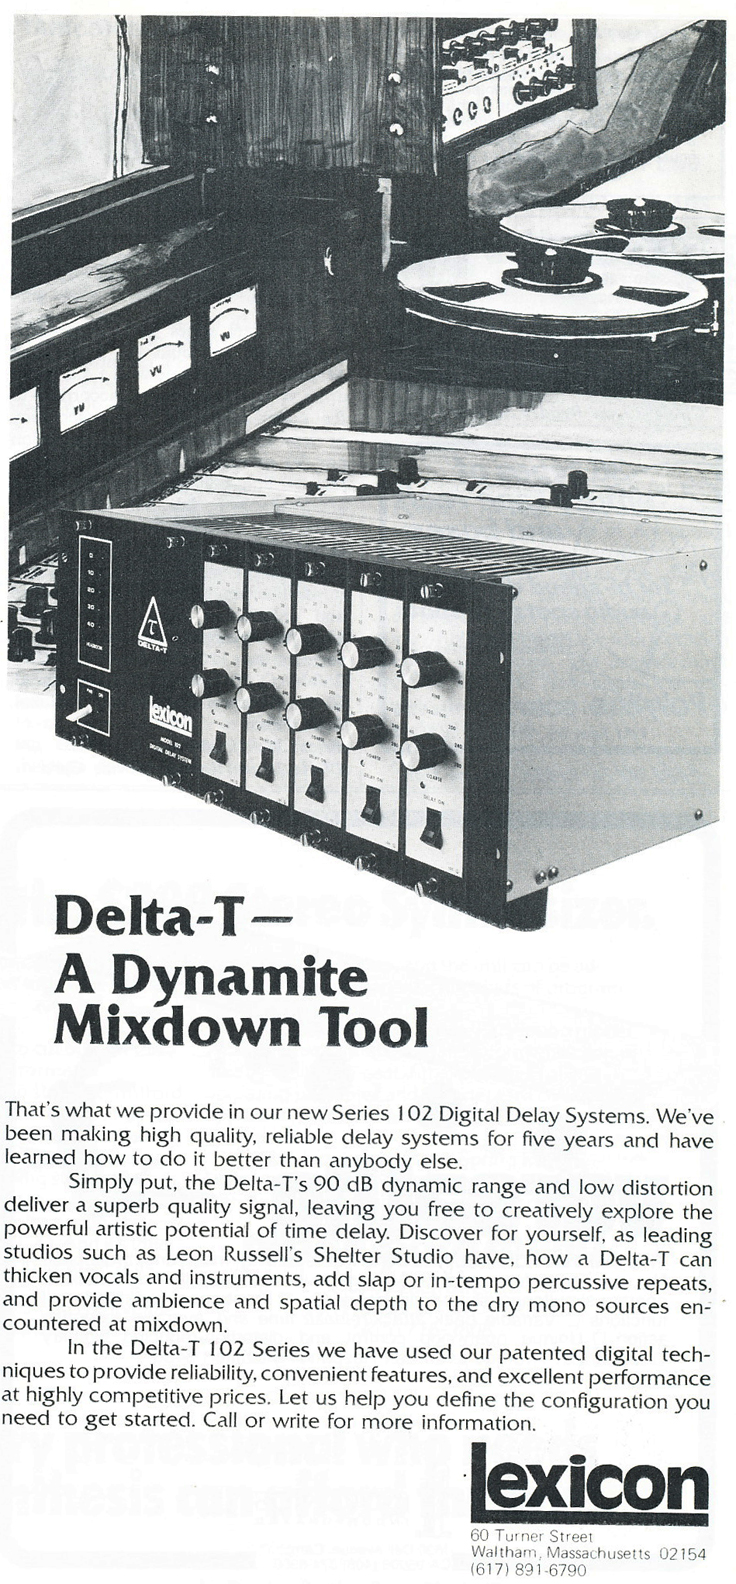 1975 ad for Lexicon in Reel2ReelTexas.com's vintage recording collection